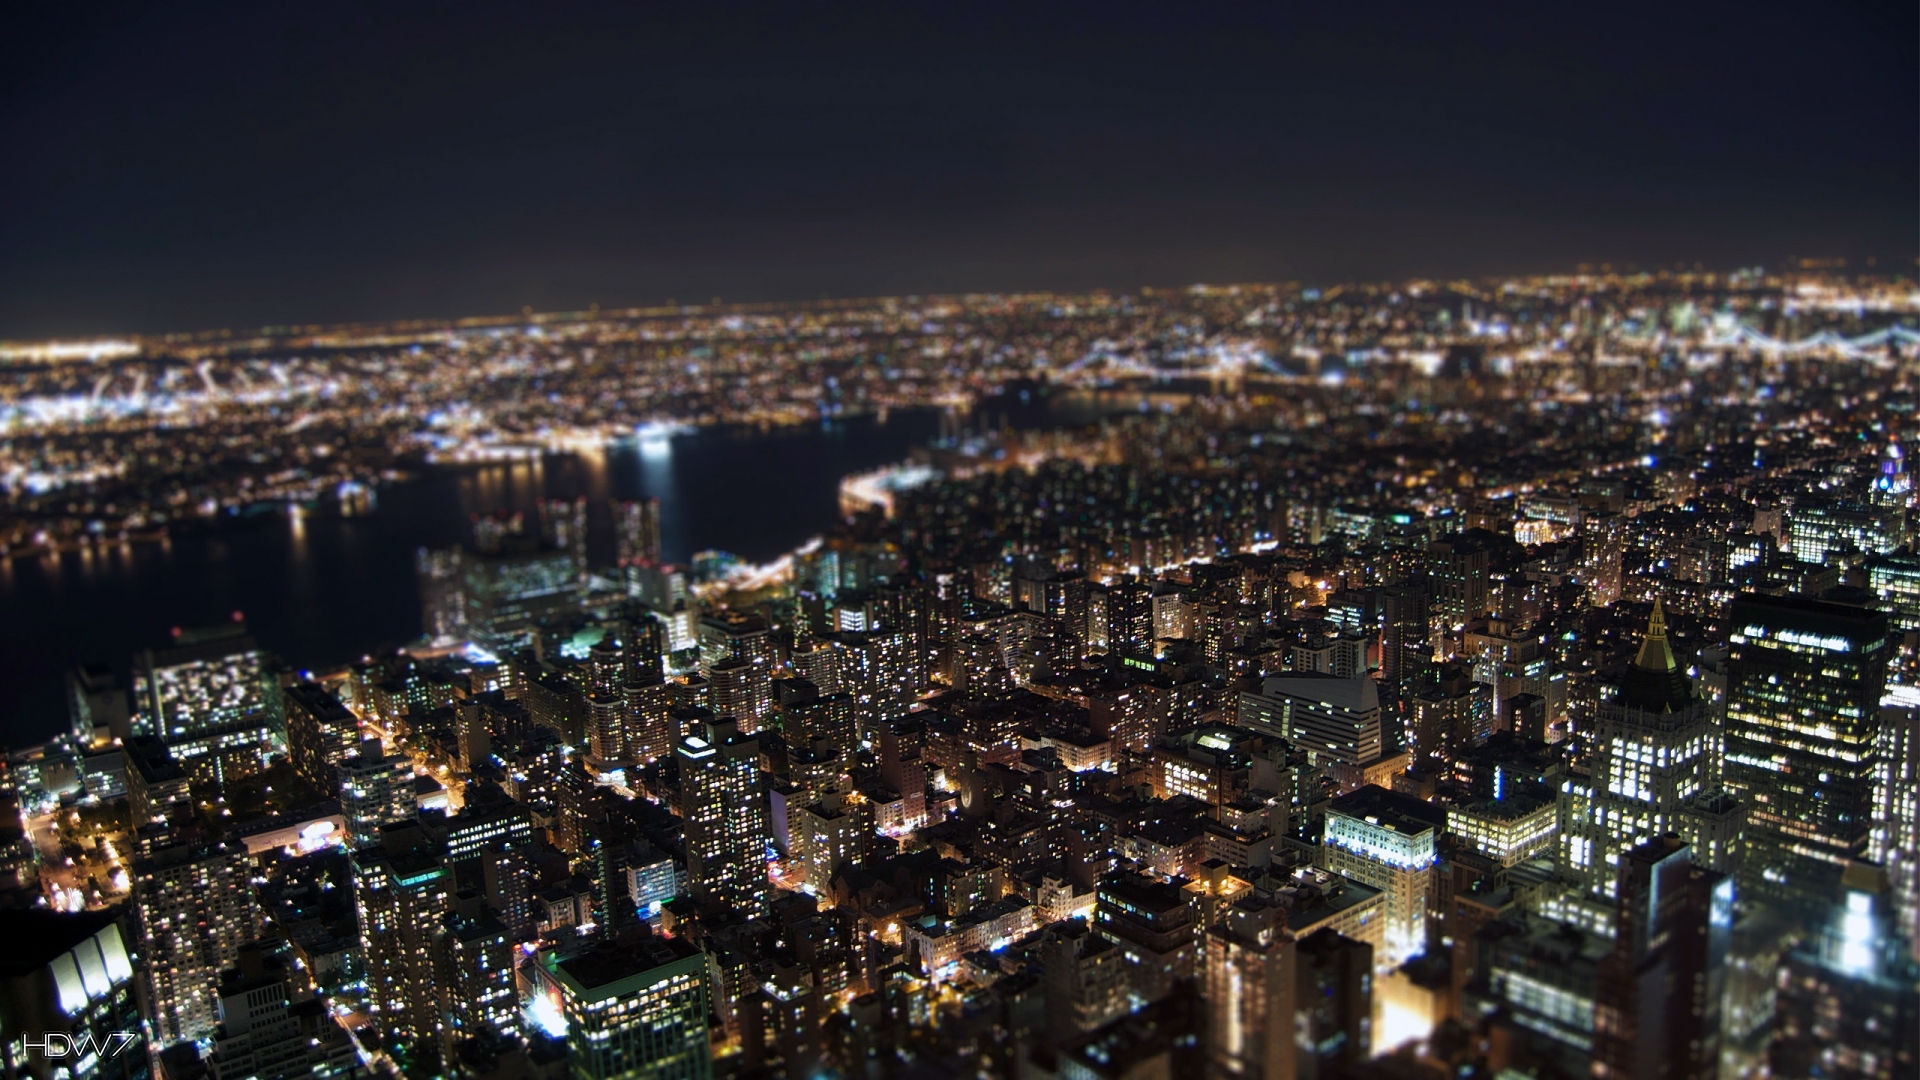 New York City Night Hd Wallpaper Gallery 19